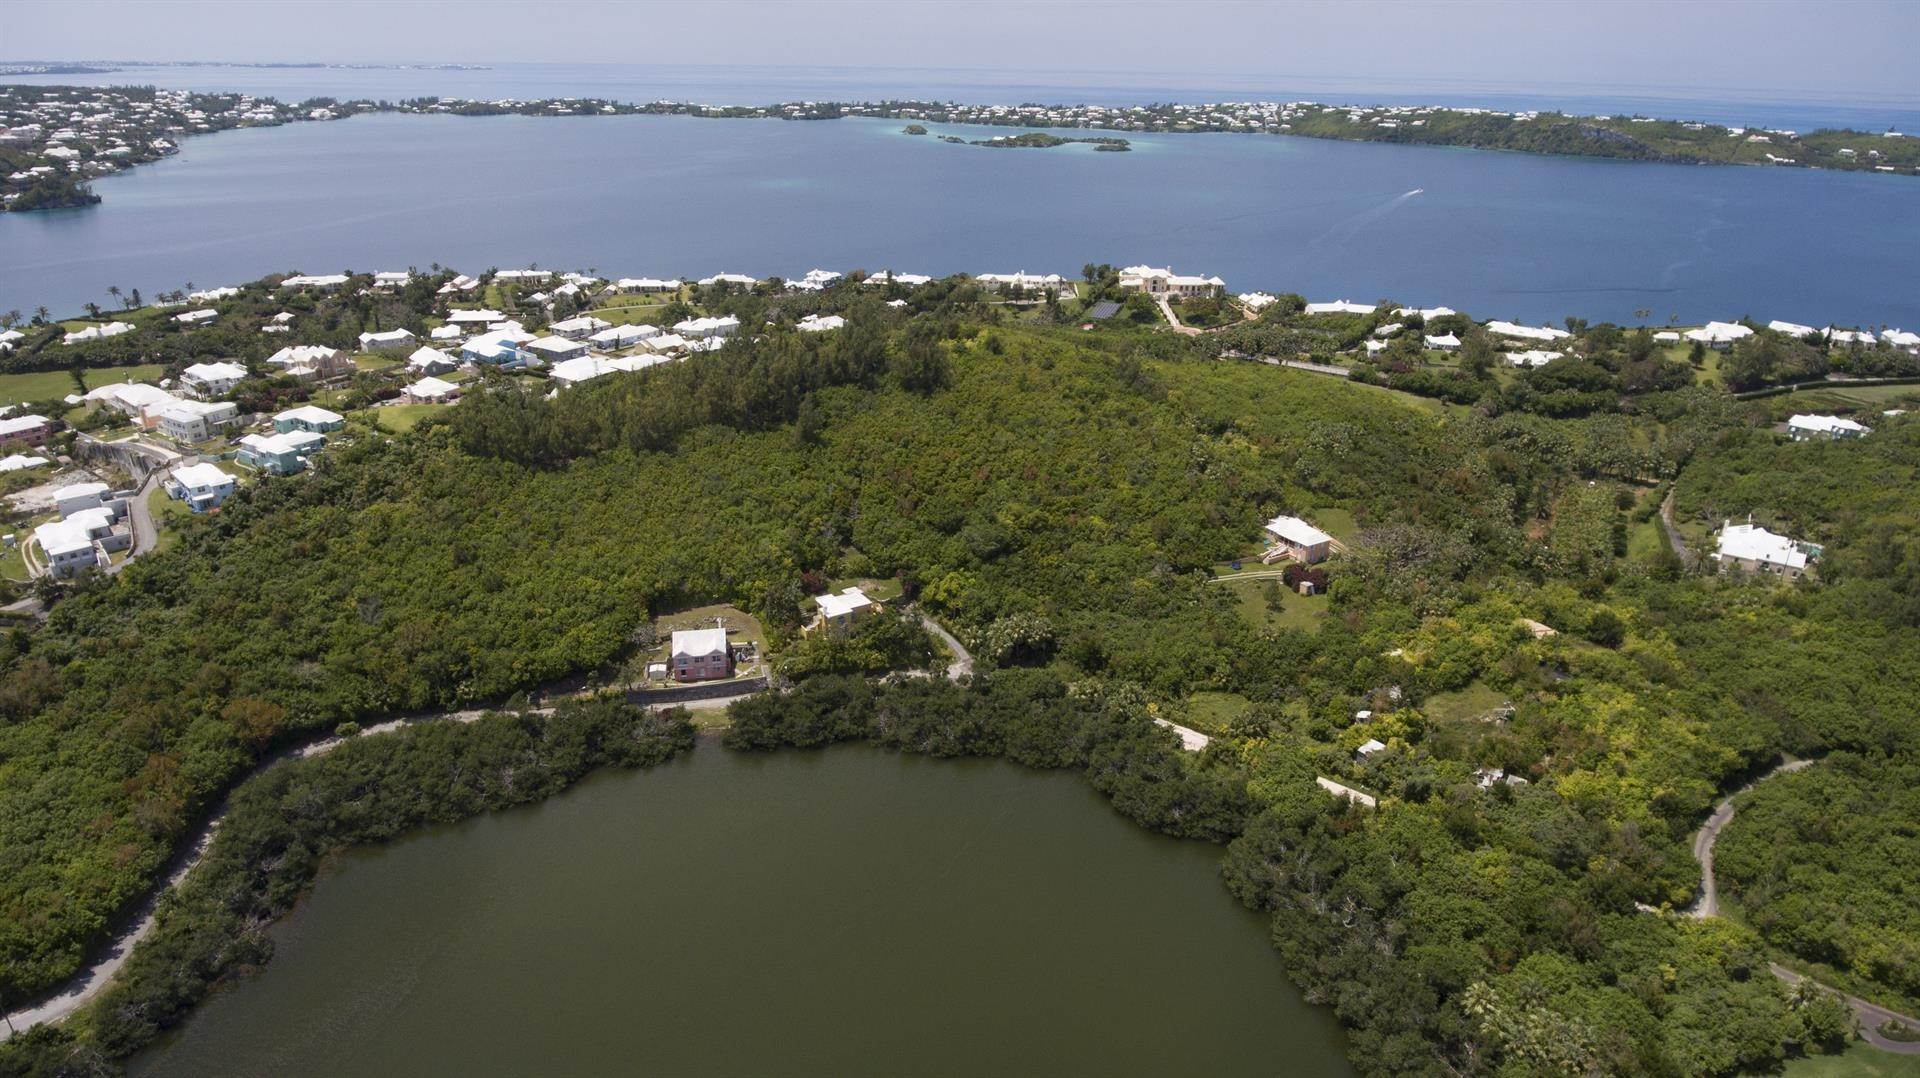 Estate for Sale at North Estate: Old Quarry & North Farm North Estate: Old Quarry & North Farm, 126 Harrington Sound Road,Bermuda – Sinclair Realty